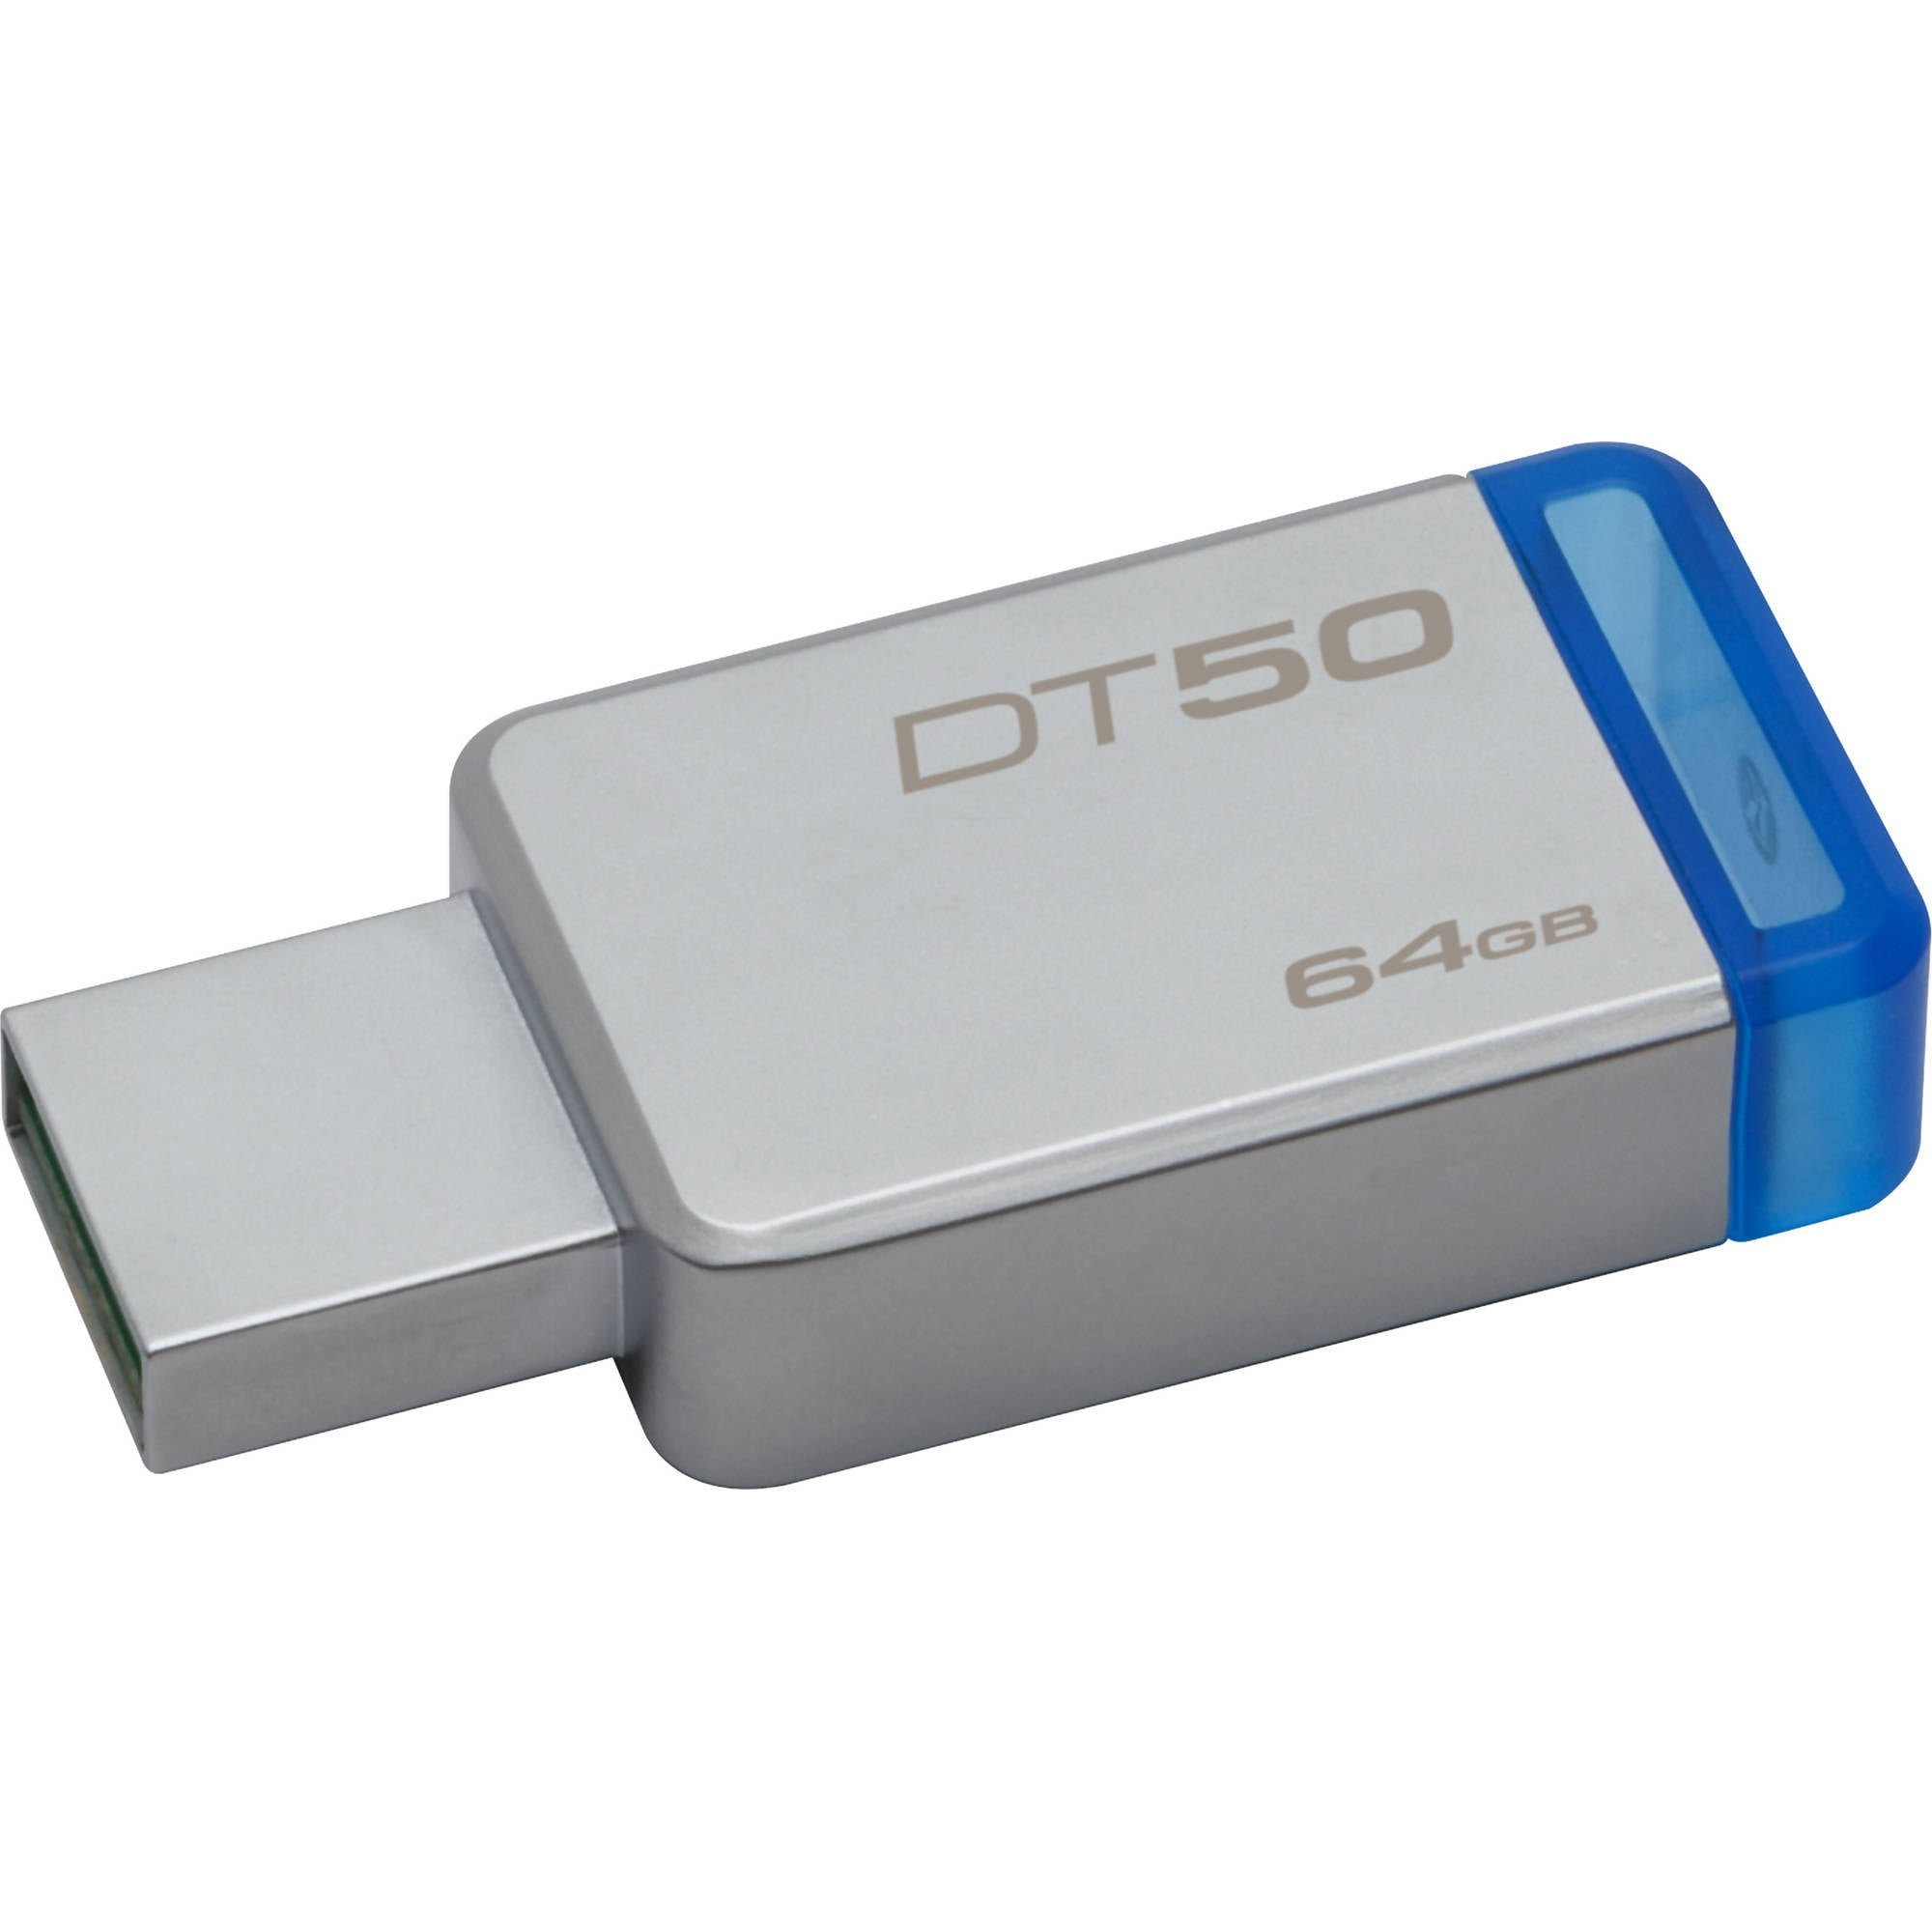 MEMORIA USB 64GB KINGSTON 3.1 - APE-Plazas